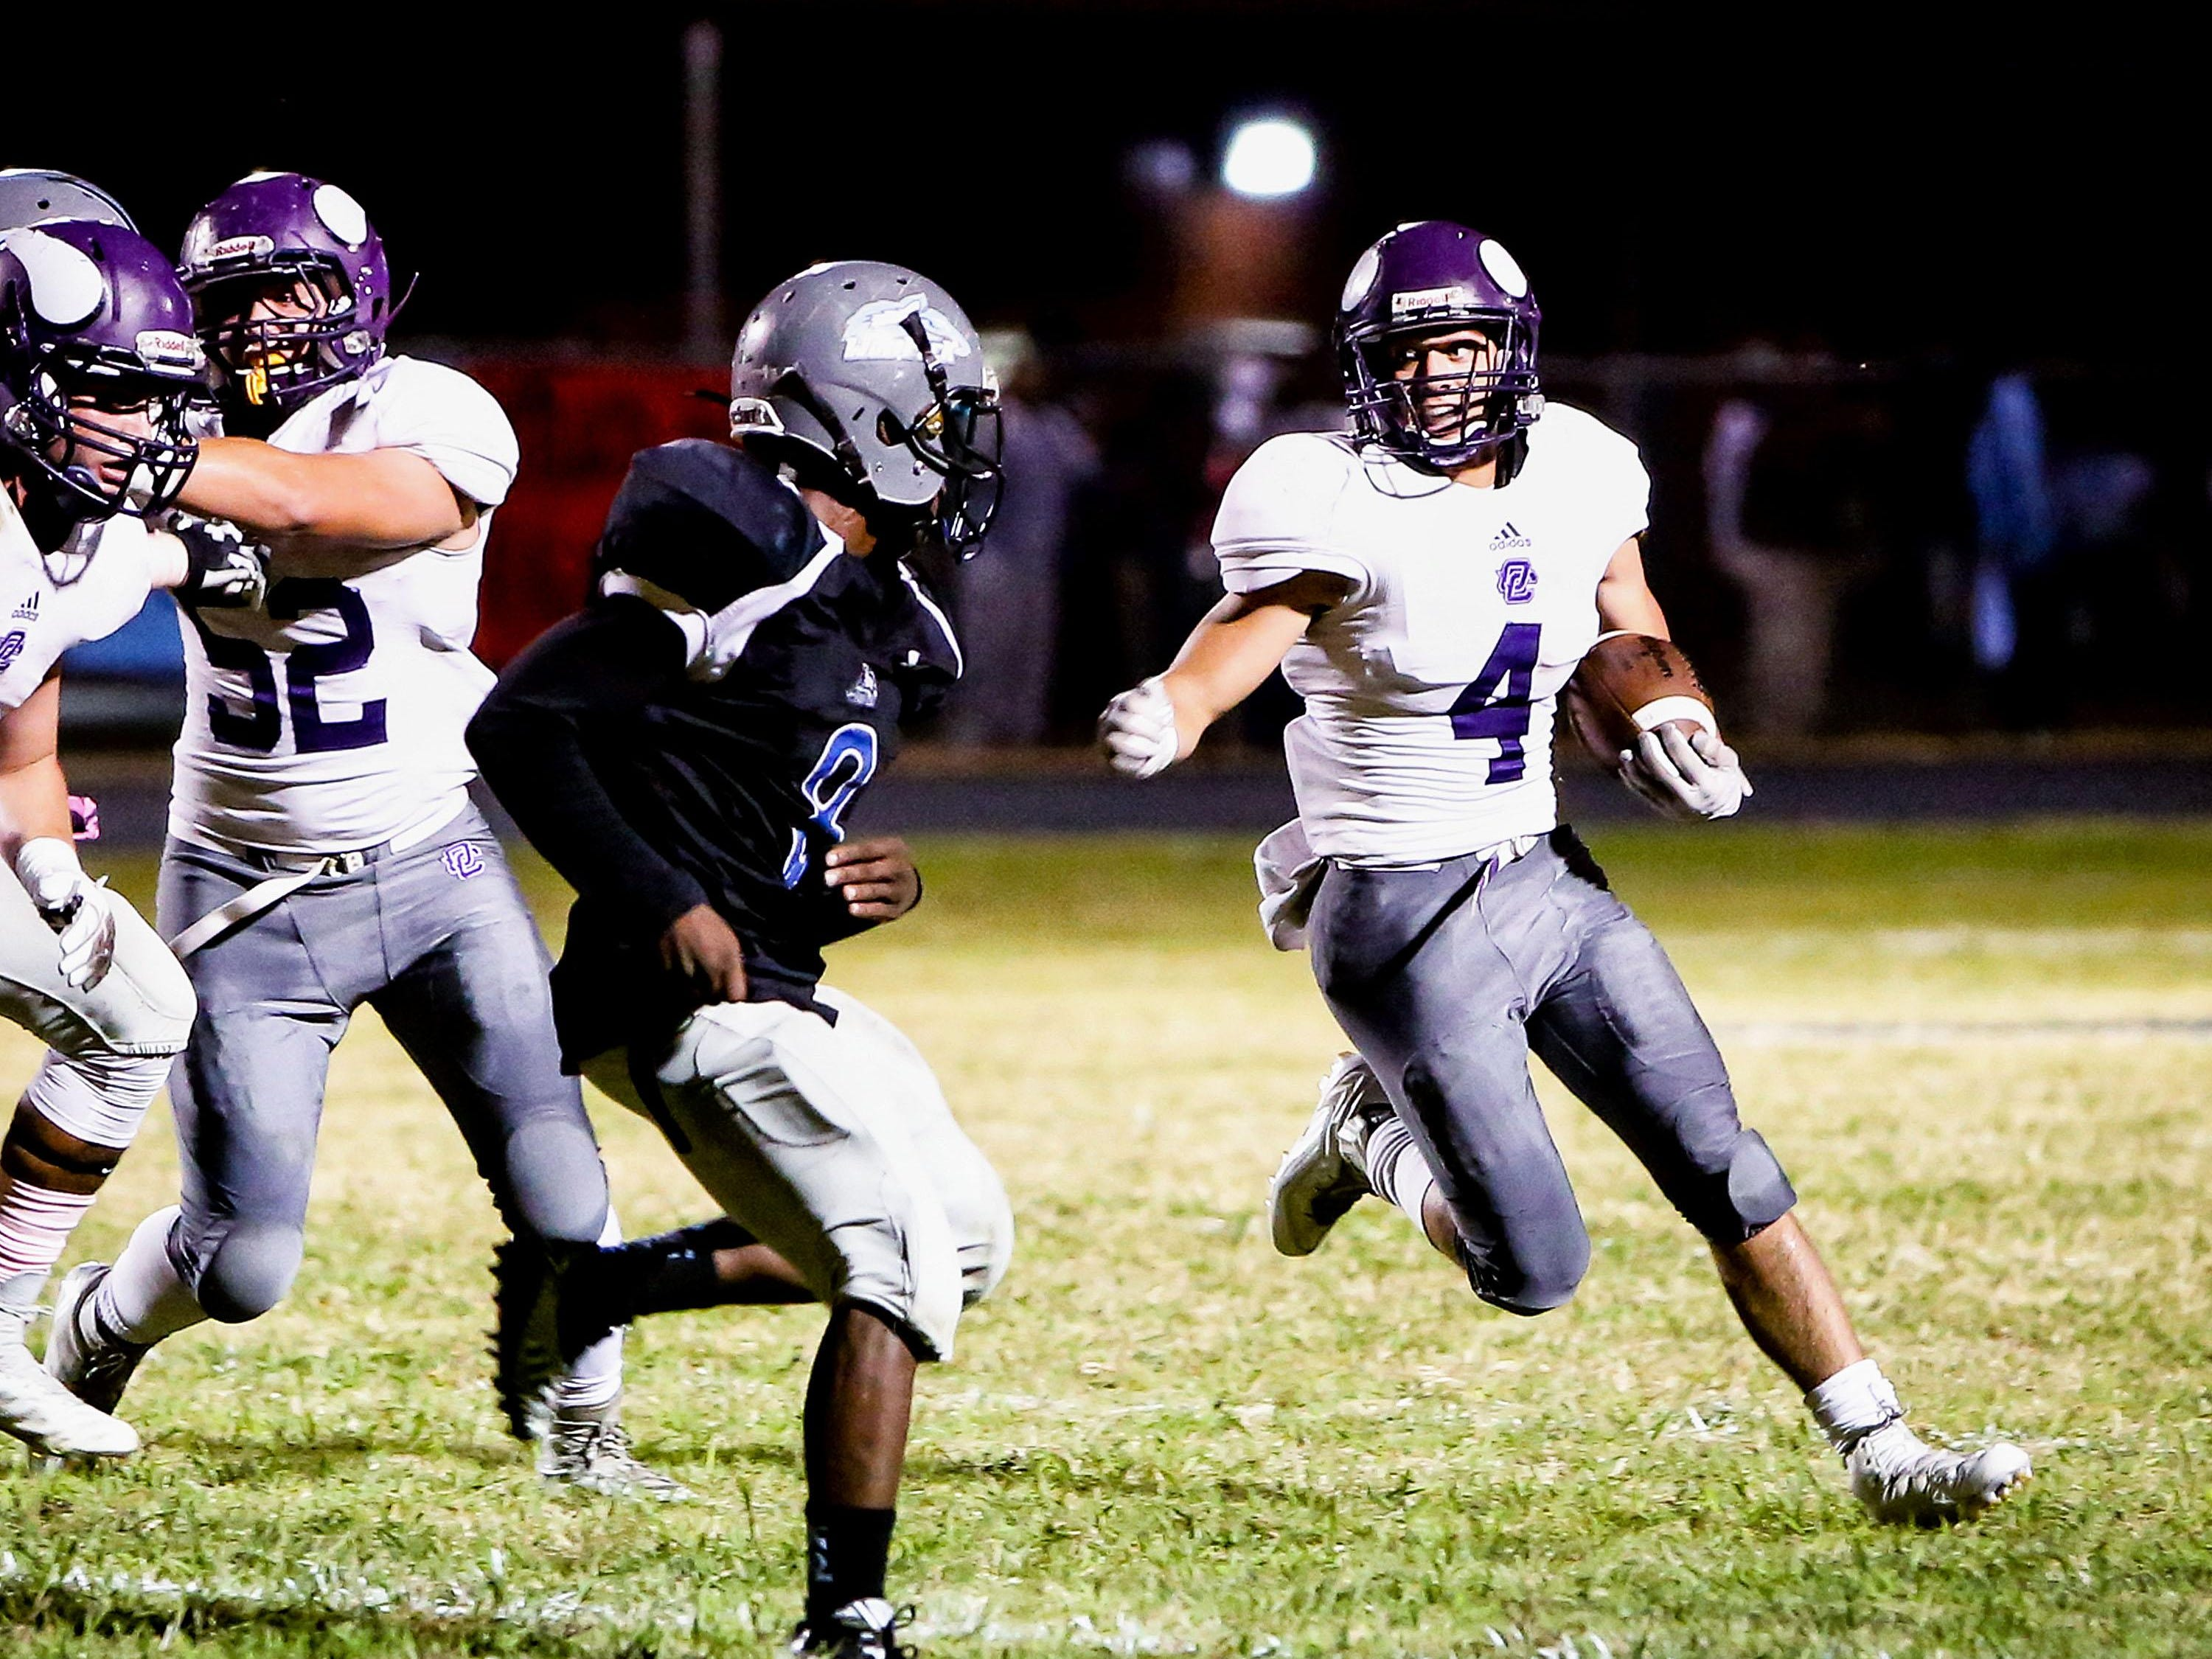 Opelousas Catholic running back Lynwood Hebert (4) tries to get outside on a sweep during win over West St. Mary.